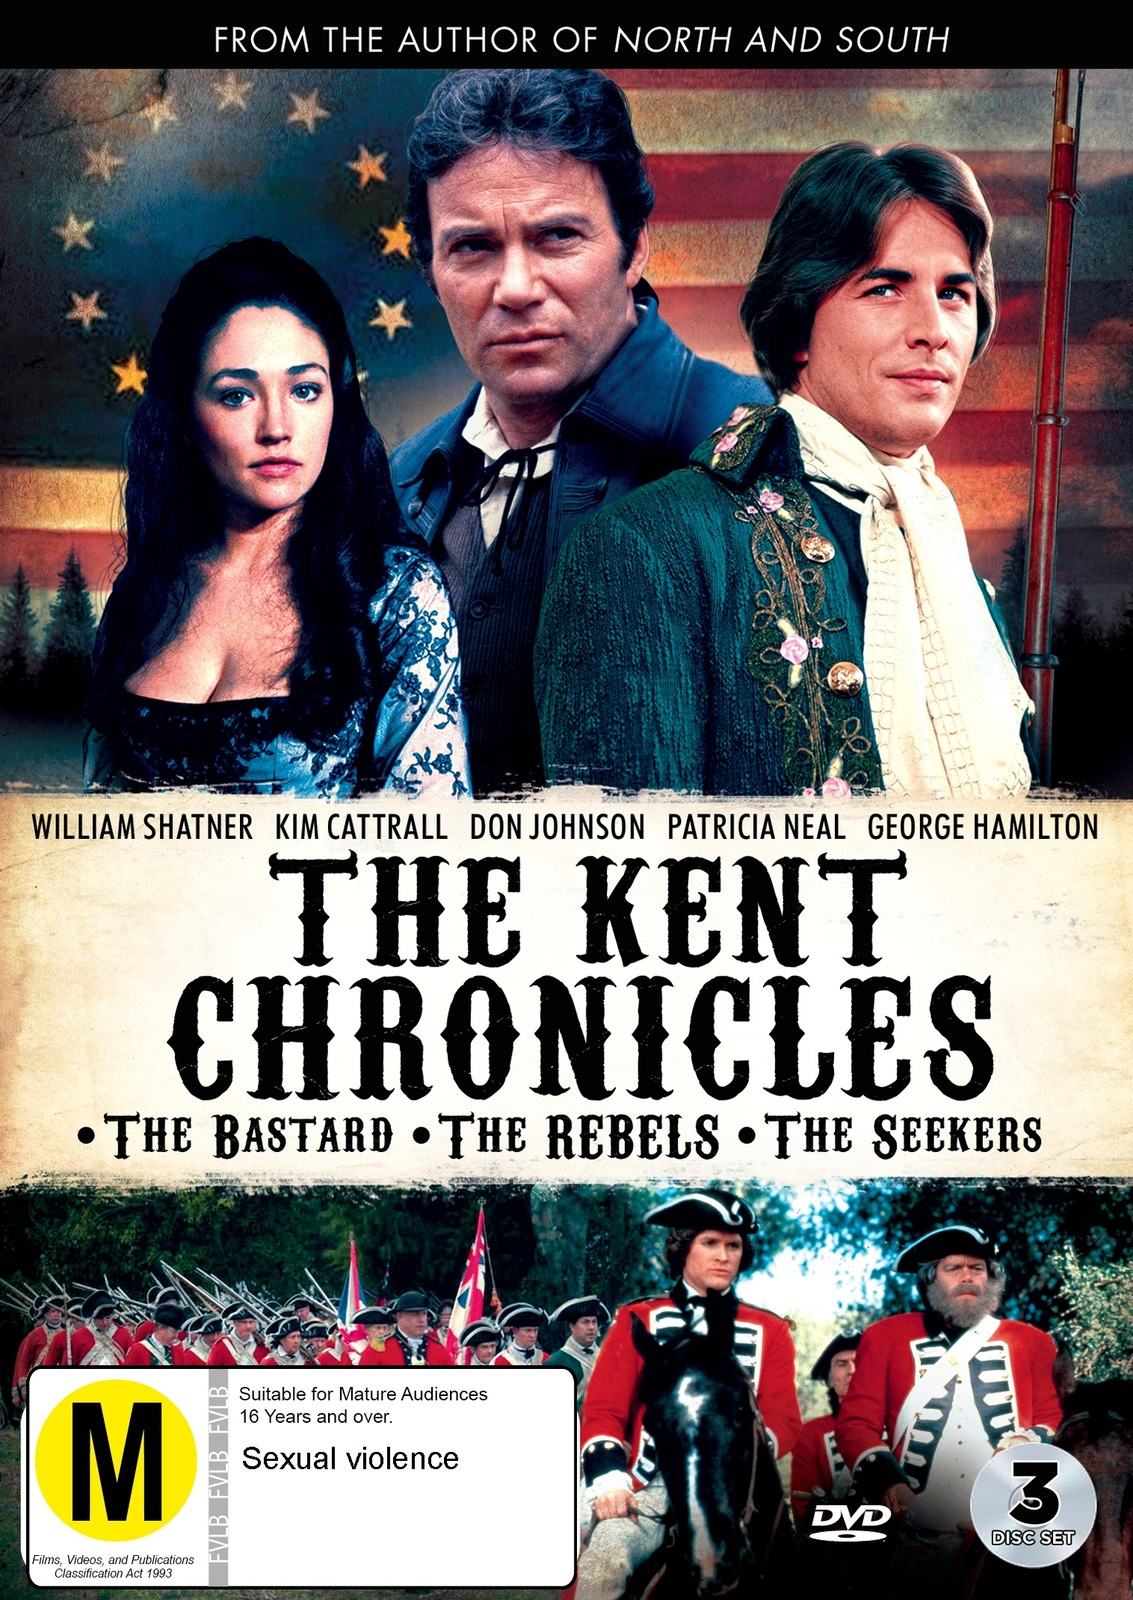 The Kent Chronicles image